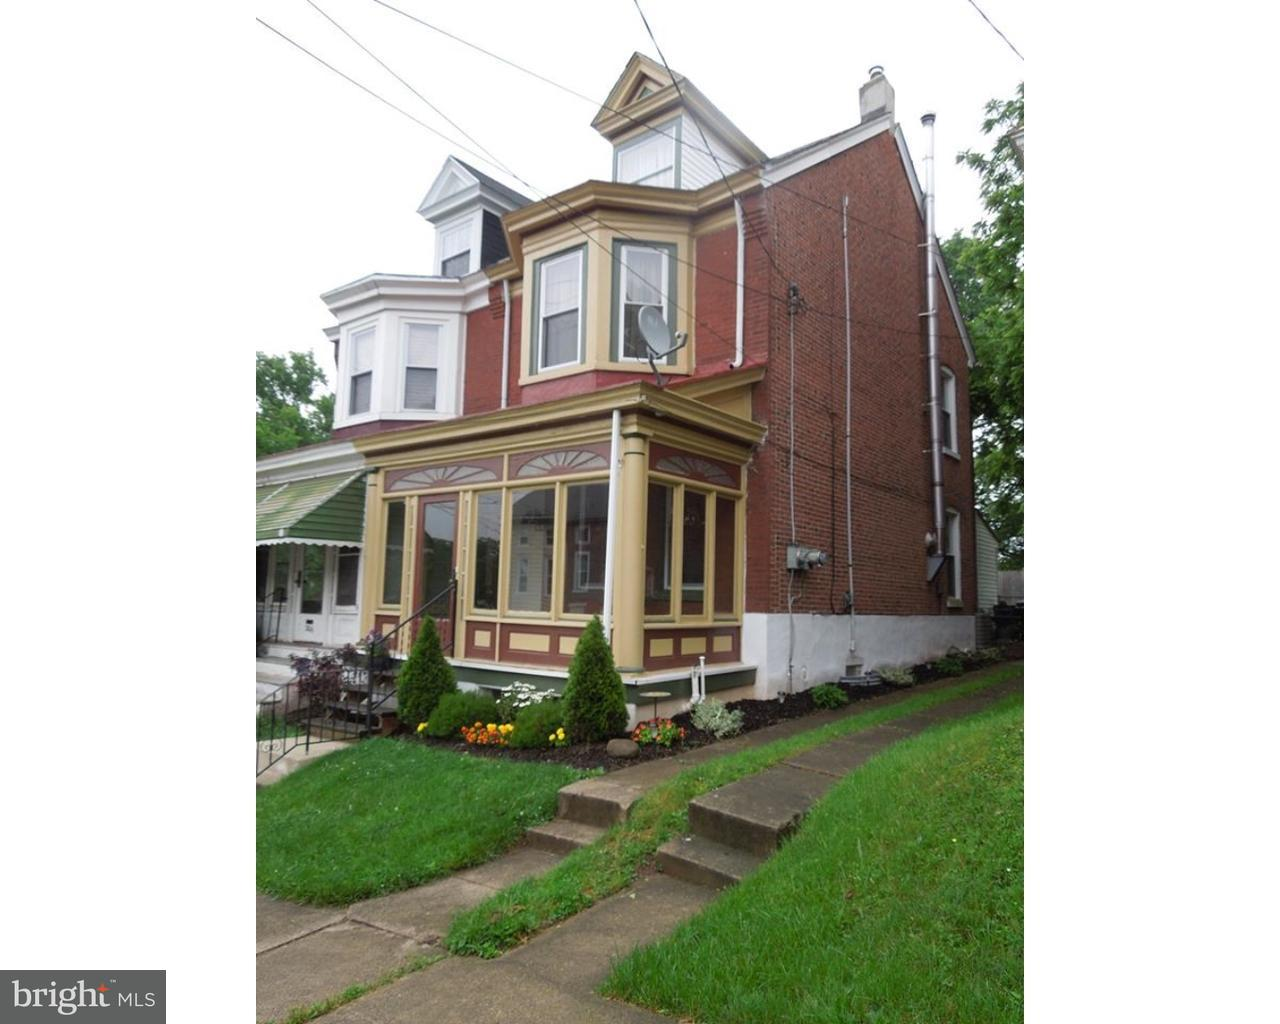 208 WALNUT ST, SPRING CITY - Listed at $1,500, SPRING CITY